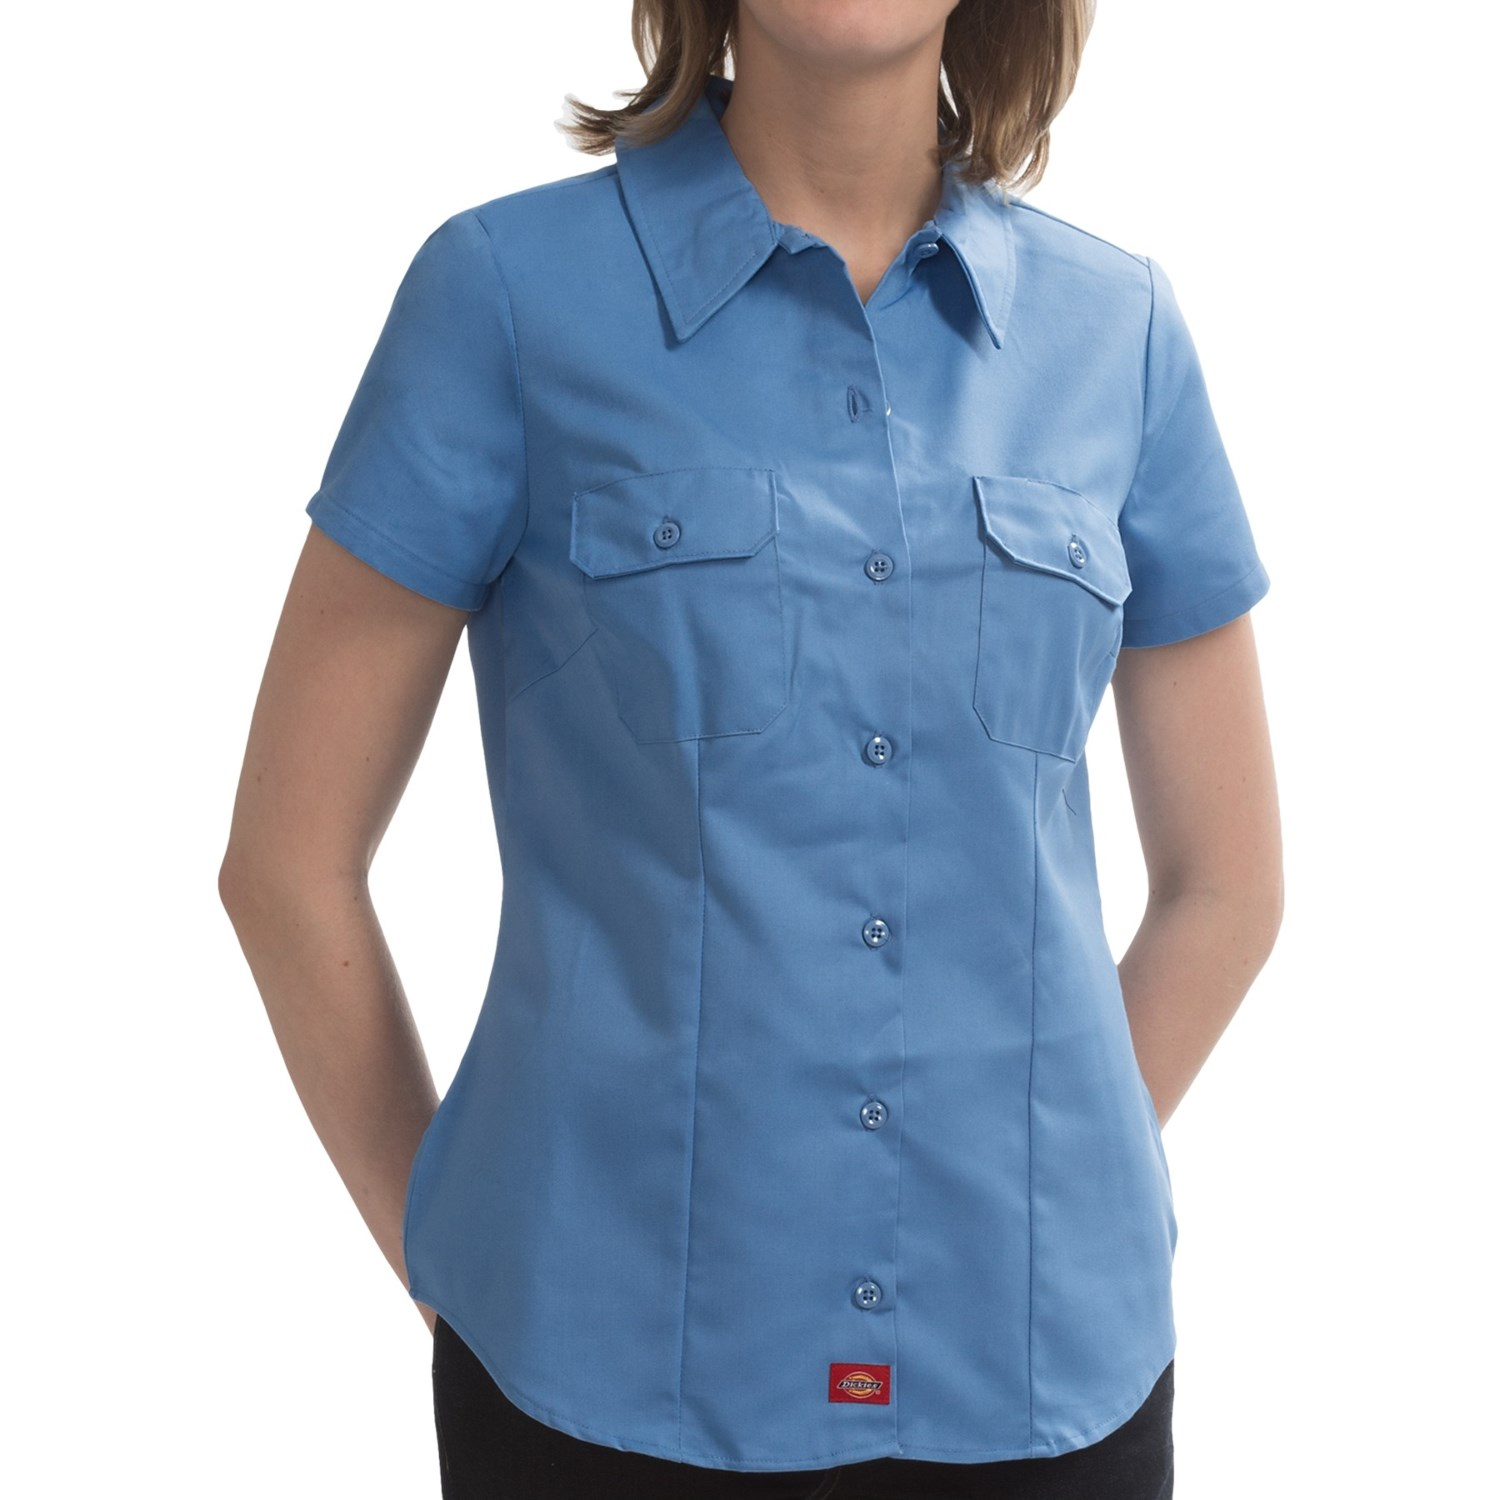 Dickies wrinkle resistant work shirt for women save 86 Wrinkle free shirts for women